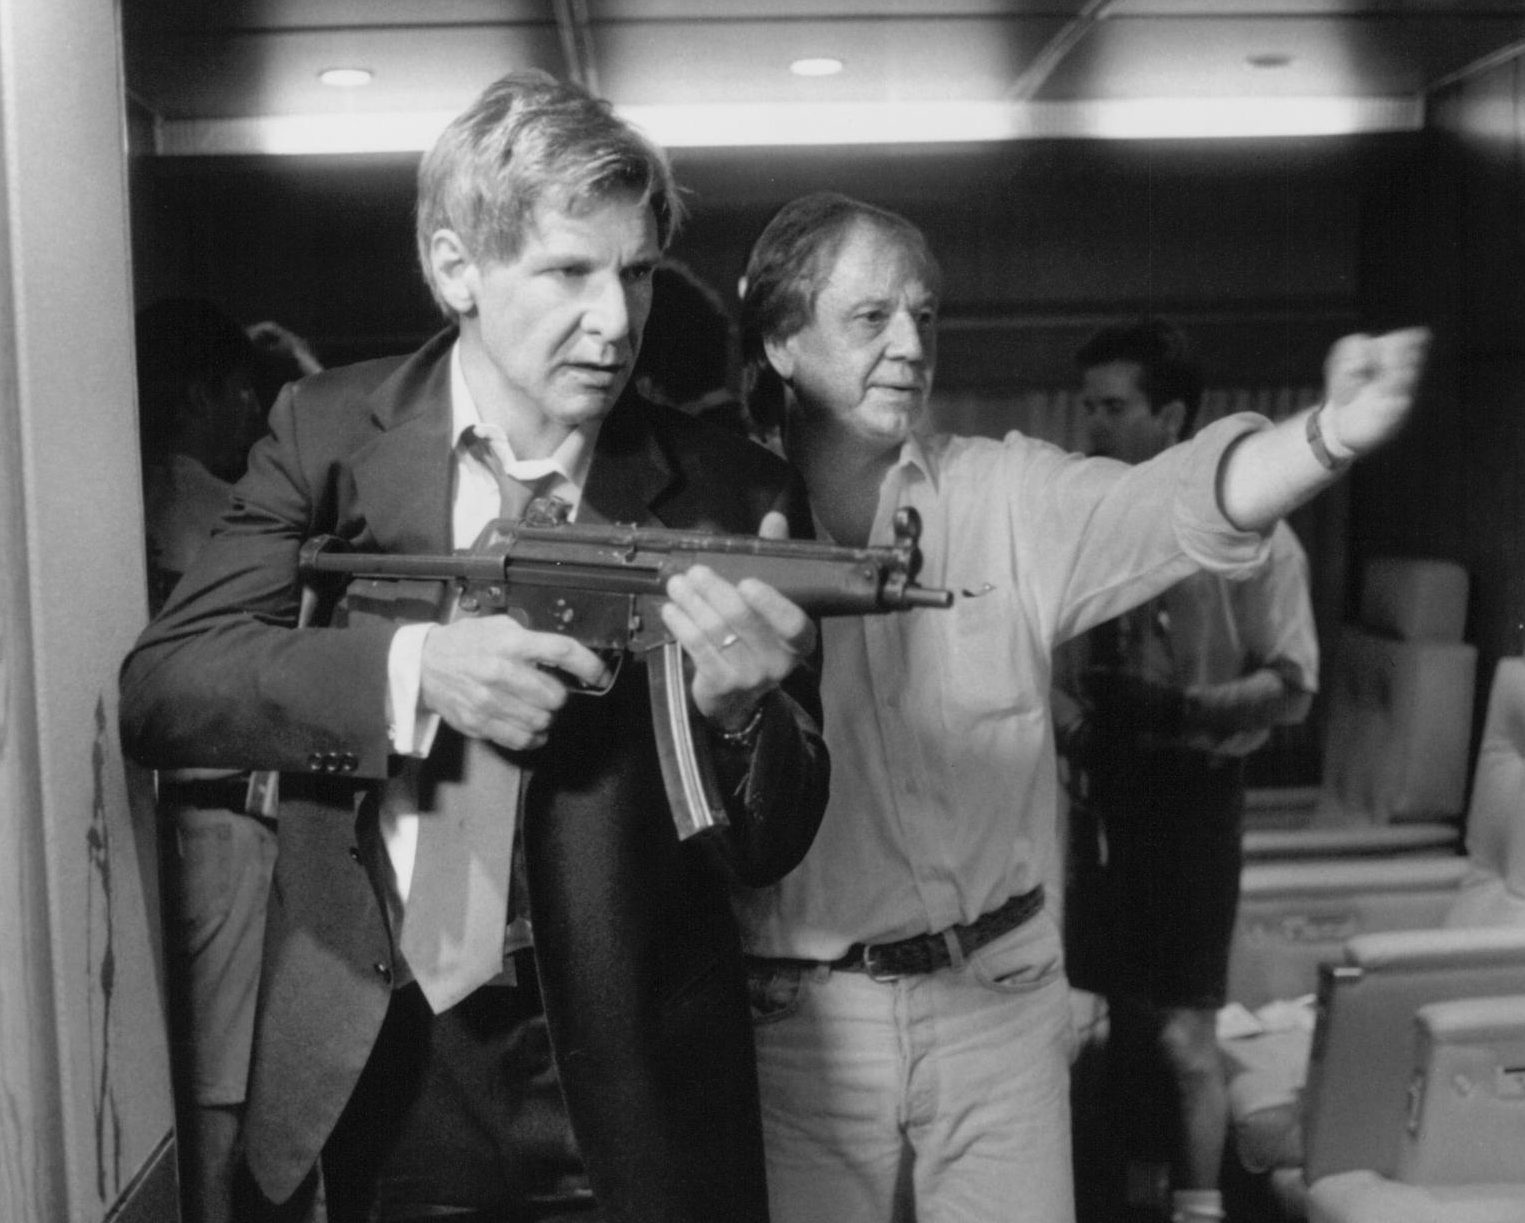 Air Force One Harrison Ford Wolfgang Petersen e1623408856385 20 Presidential Facts You Didn't Know About Air Force One